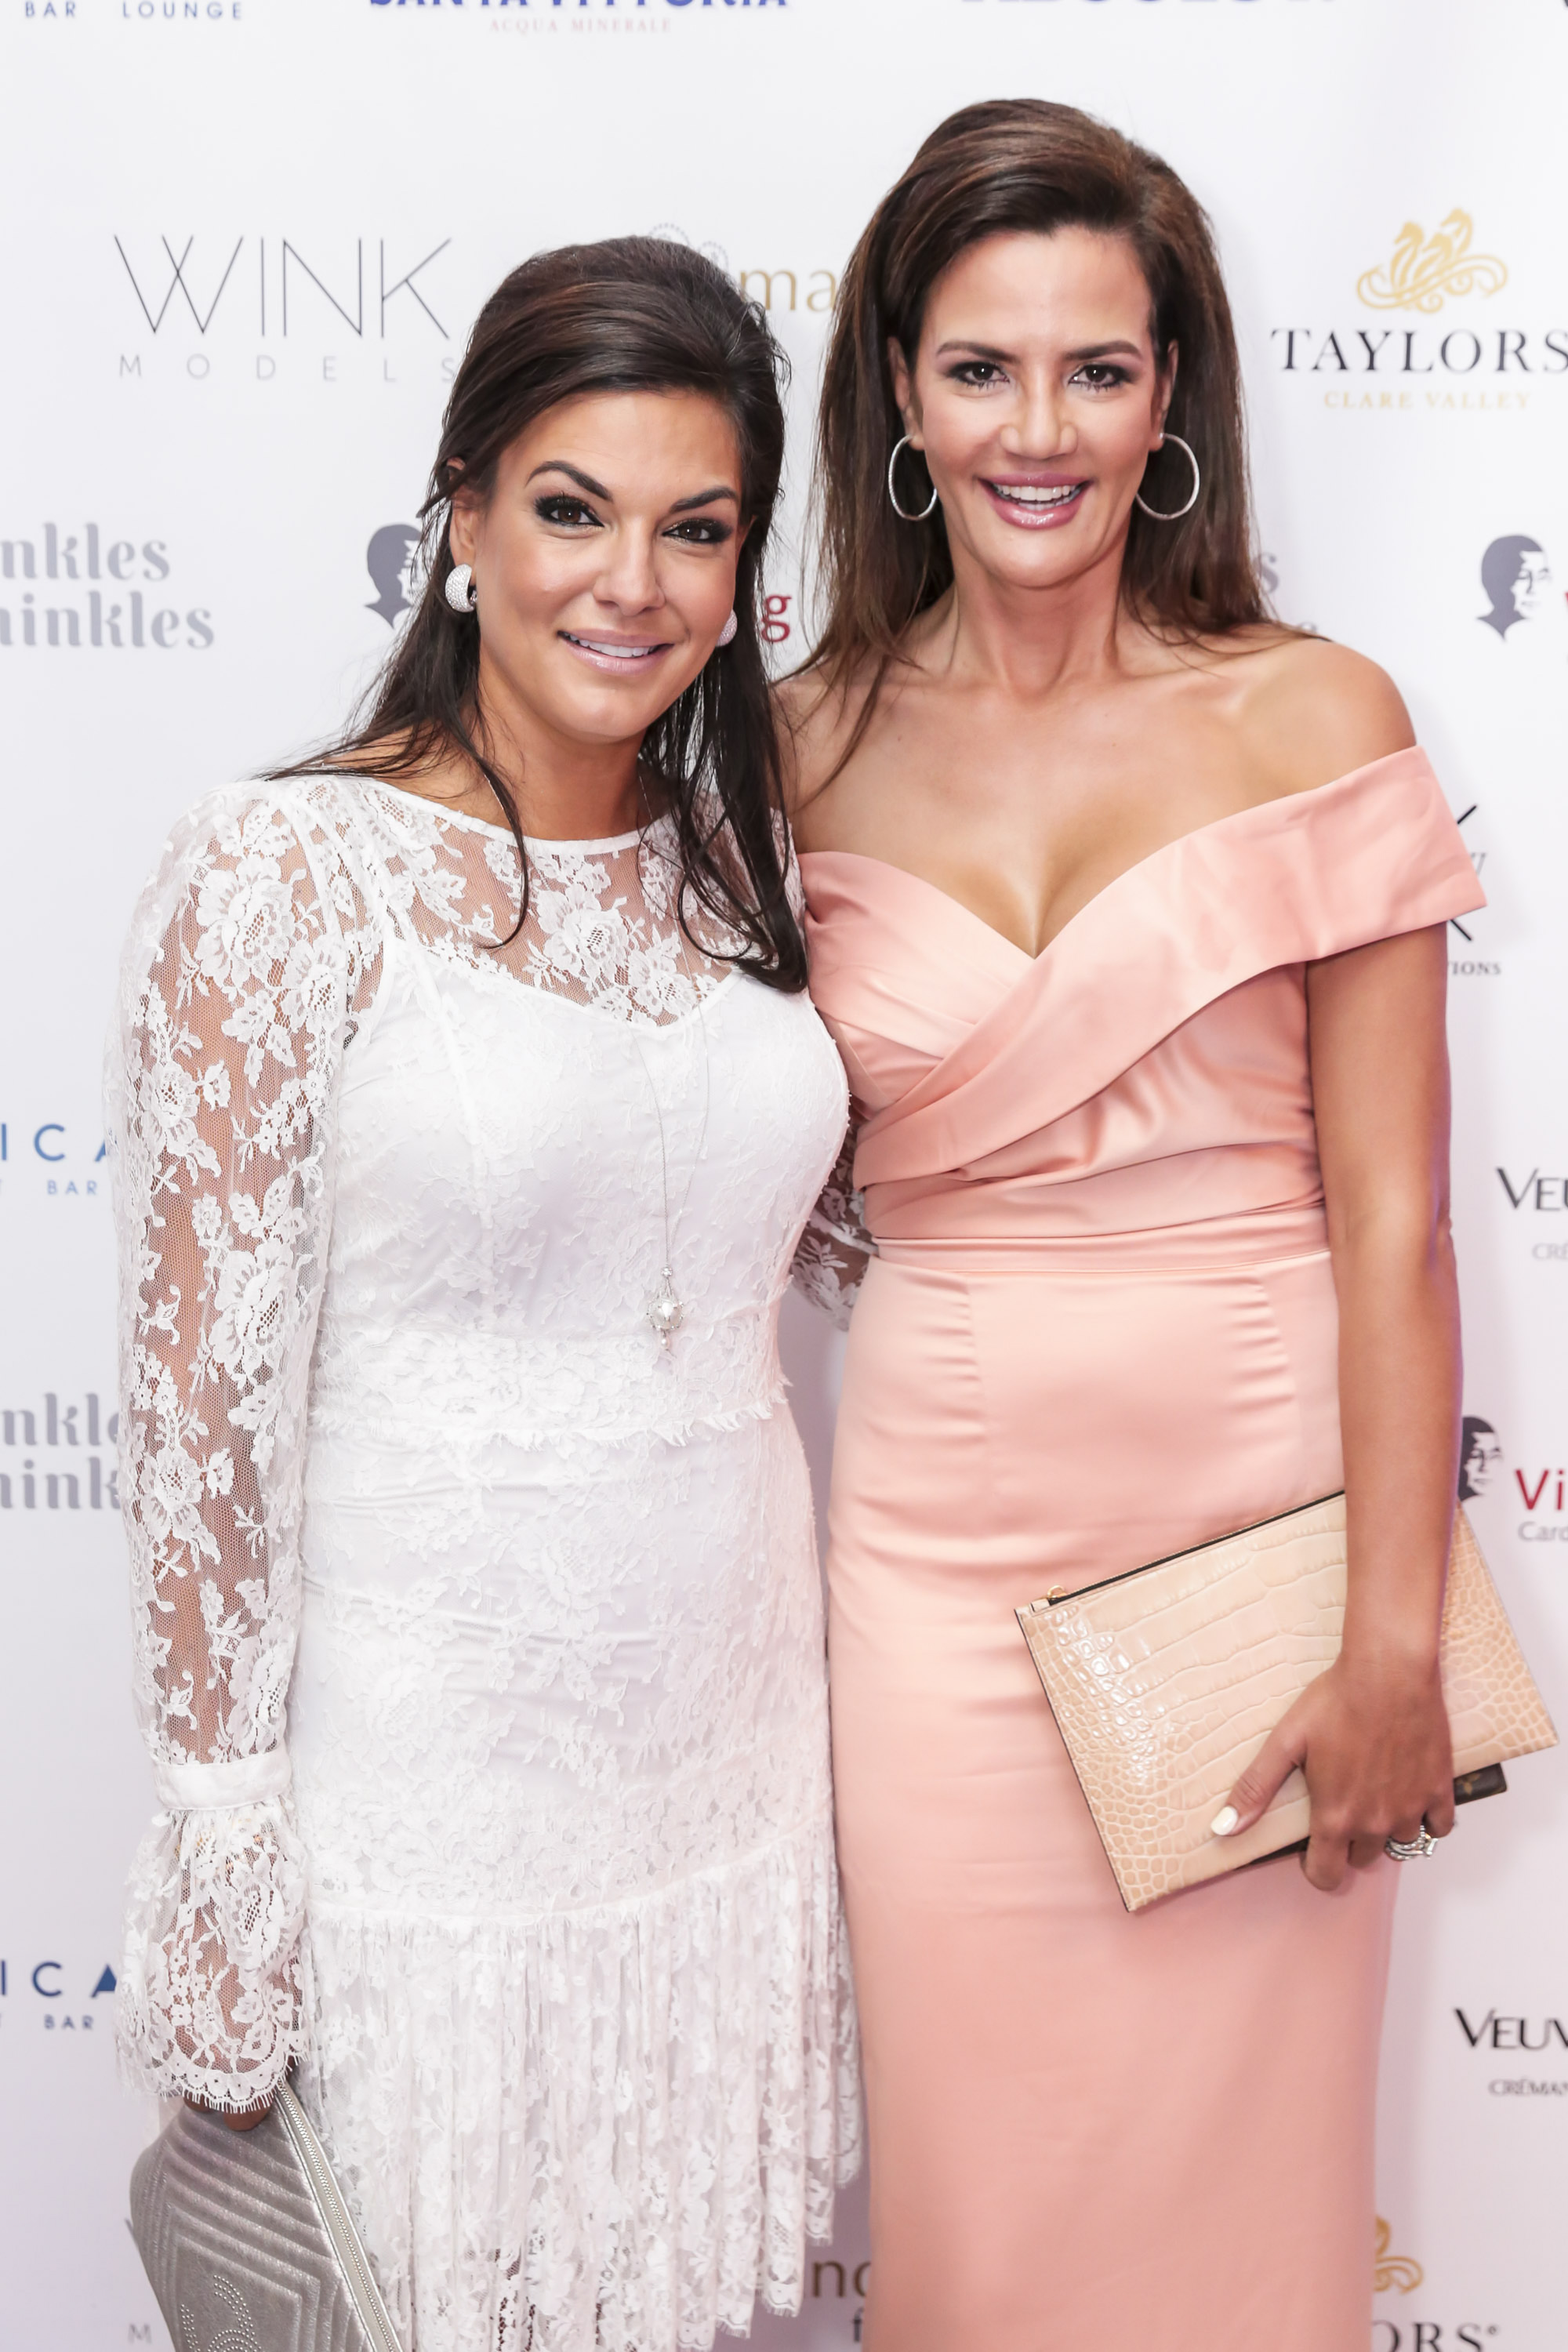 Nicole and Krissy at the Wrinkles Schminkles Launch - Behind the Scenes of The Real Housewives of Sydney Episode 7 Season 1